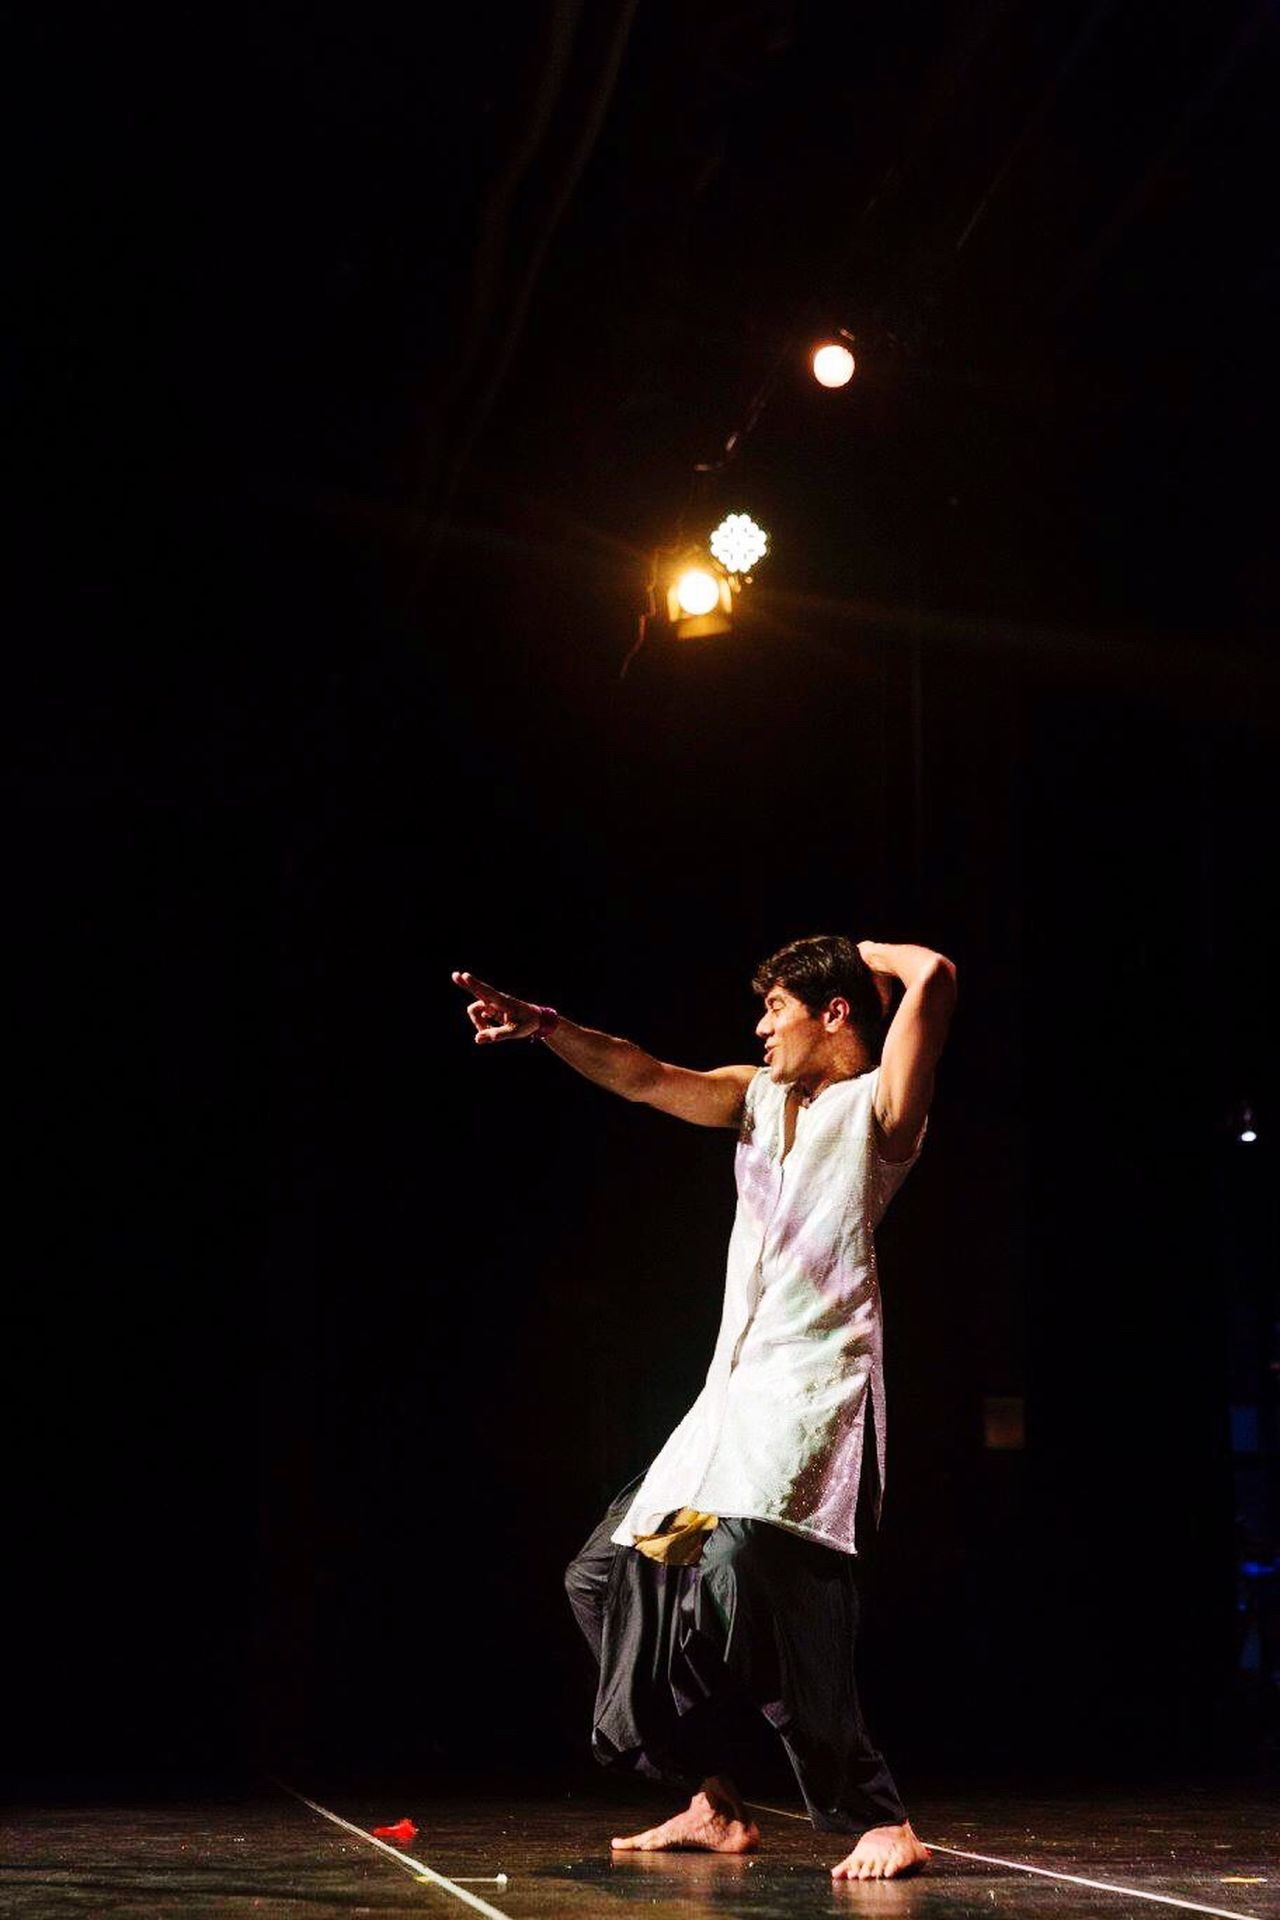 Full Length Human Arm One Person Arms Raised Illuminated Adult Night Dancer Human Body Part Adults Only Young Adult Performance Indoors  People Skill  Only Men One Man Only First Eyeem Photo Alison Gurry Elwood